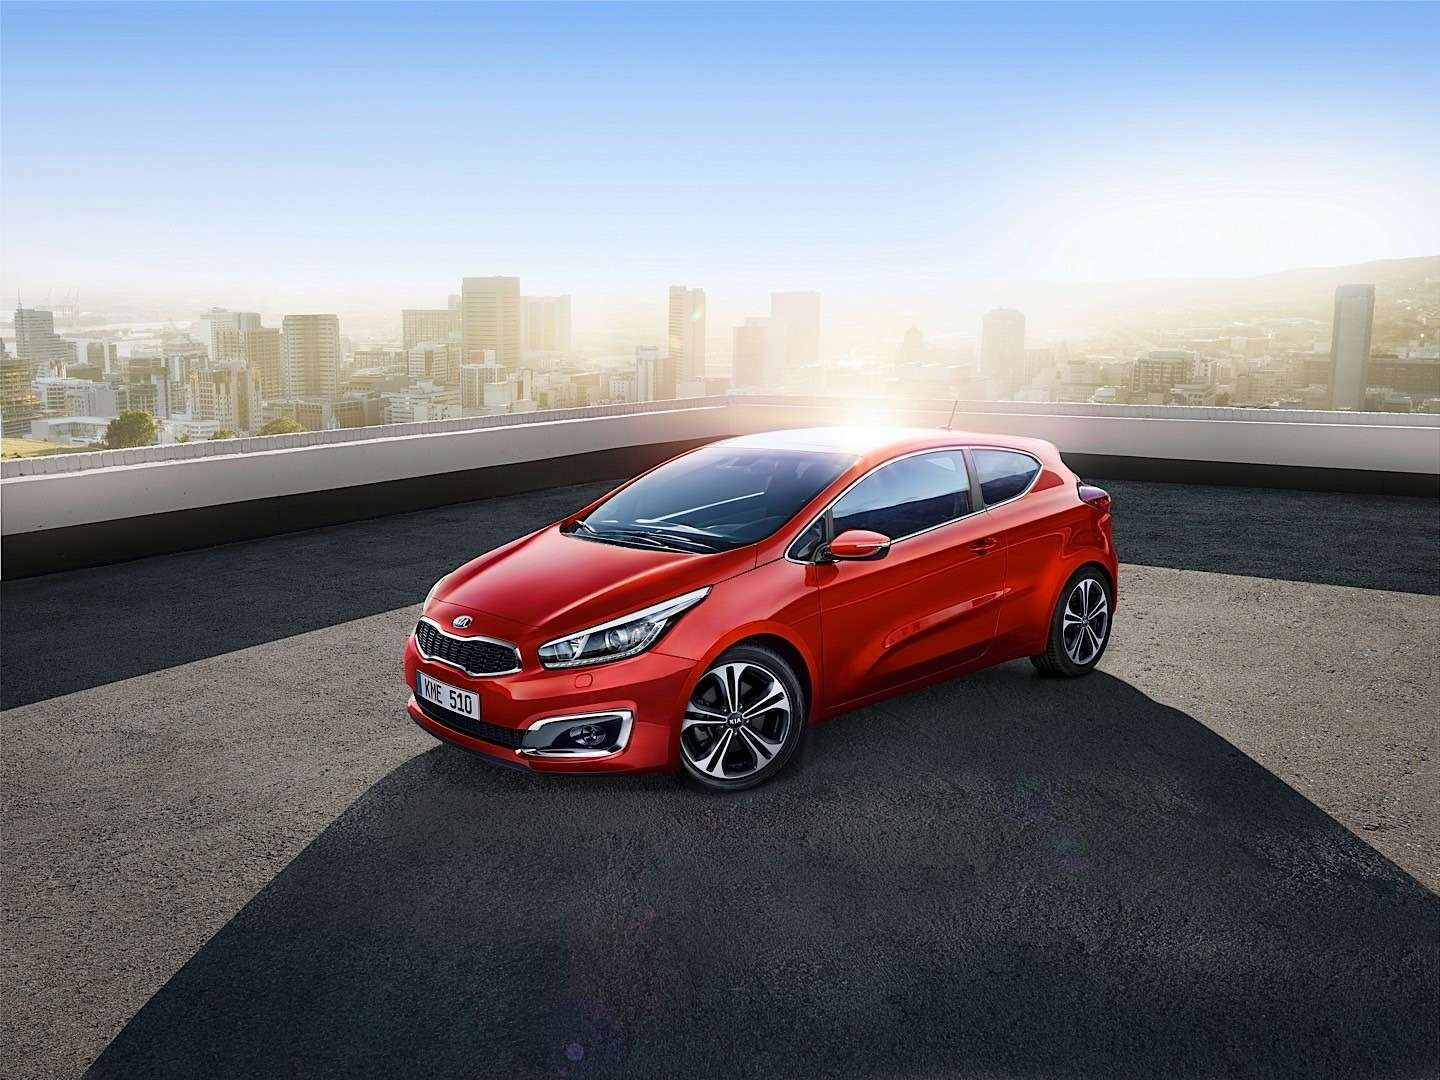 2016-kia-cee-d-brings-subtle-visual-upgrades-new-engines-and-sporty-gt-line-photo-gallery_16